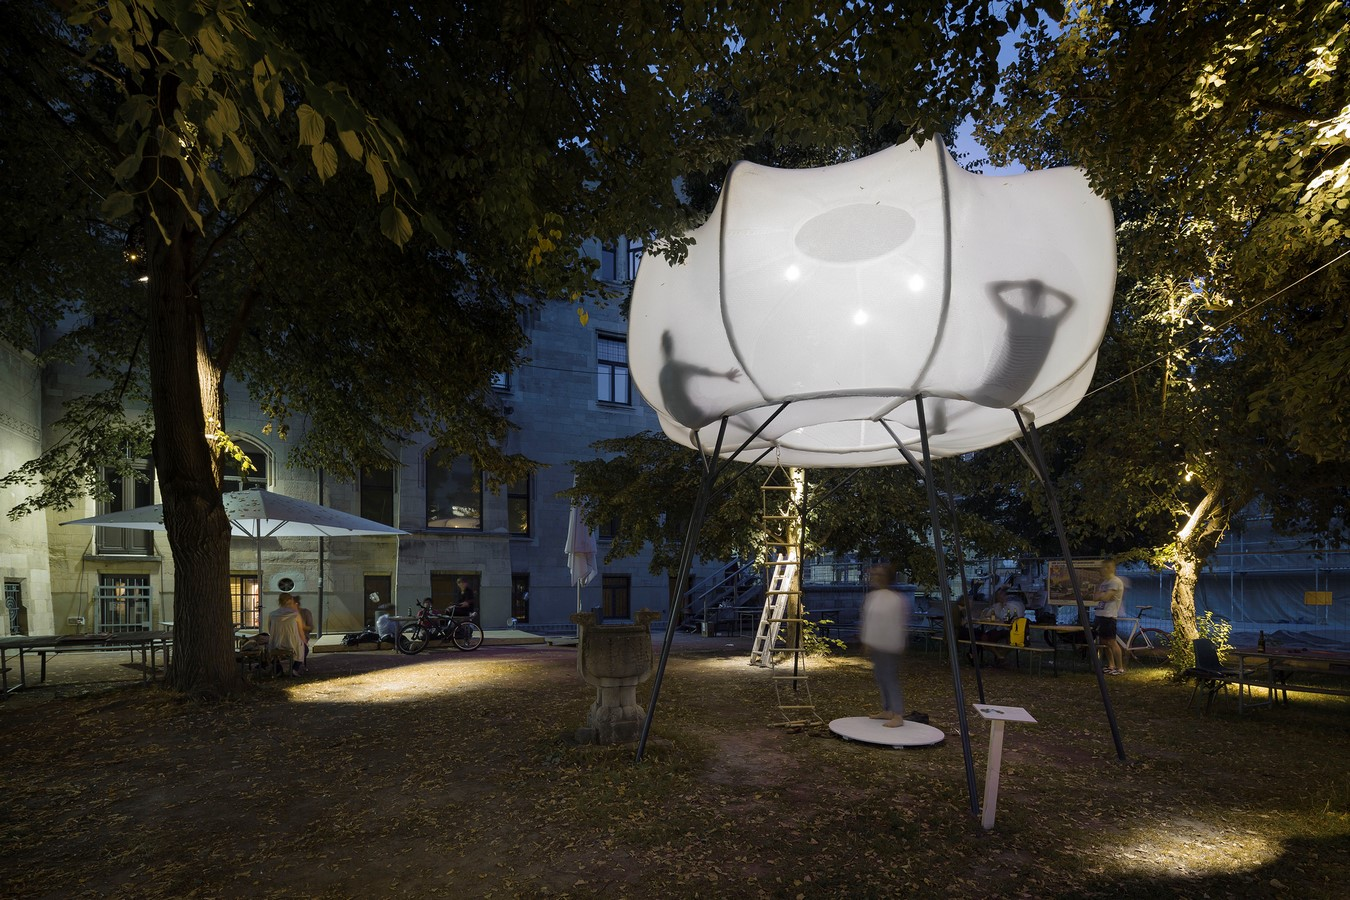 Cumulus, Inspired by the clouds, this art installation created by Clap Studio sheet6